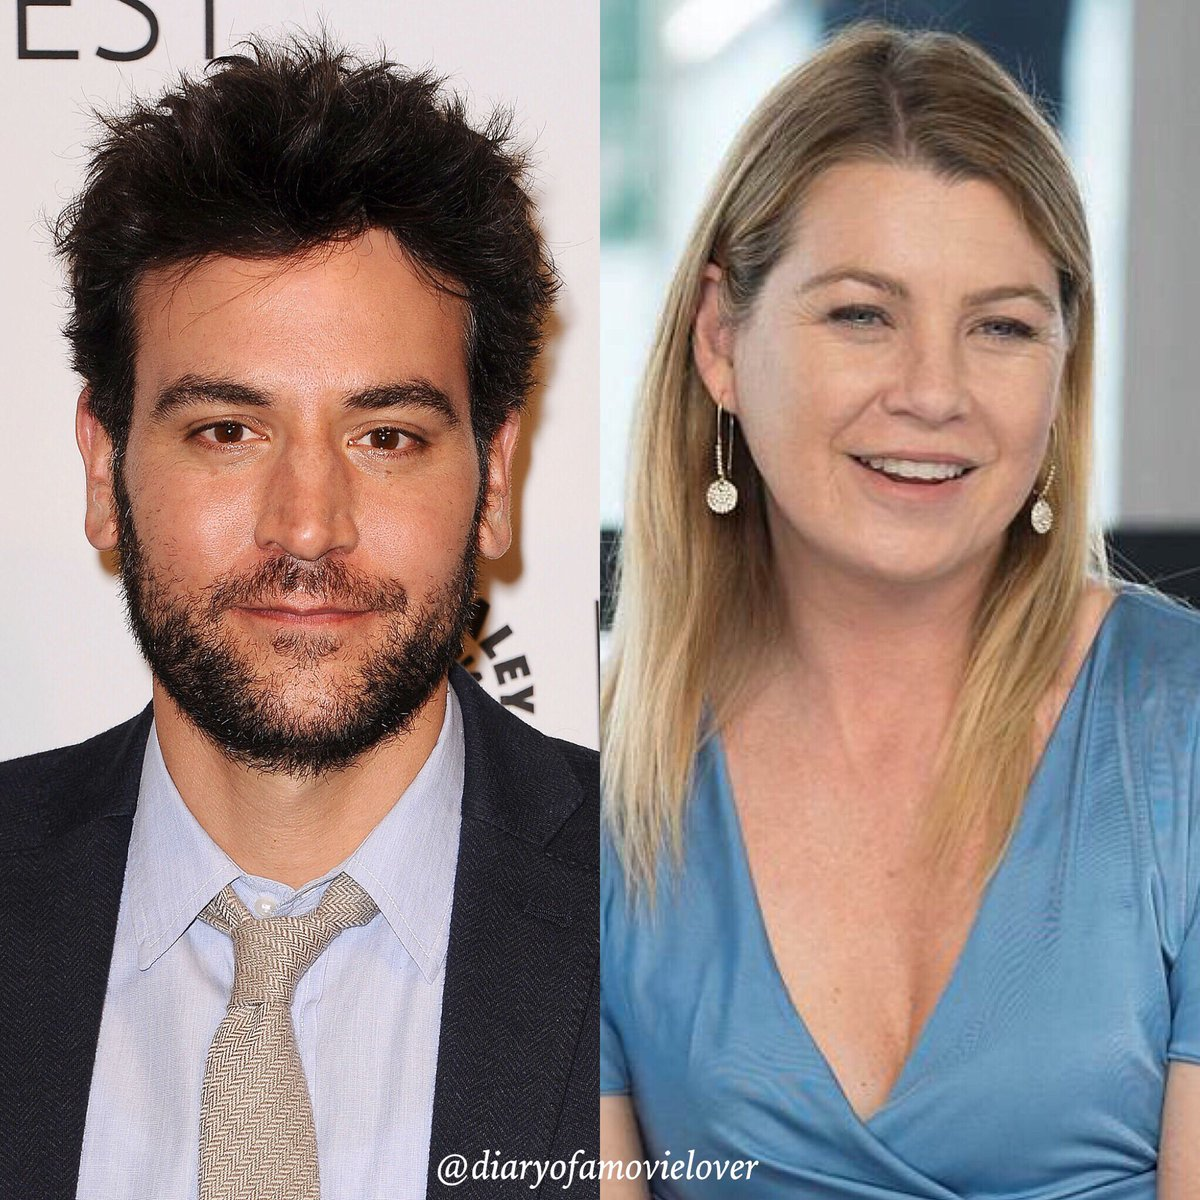 #GreysAnatomy ⁠ ⁠ has cast #HIMYM's Josh Radnor as a potential love interest for Meredith Grey. <br>http://pic.twitter.com/jgbfrbWL0i